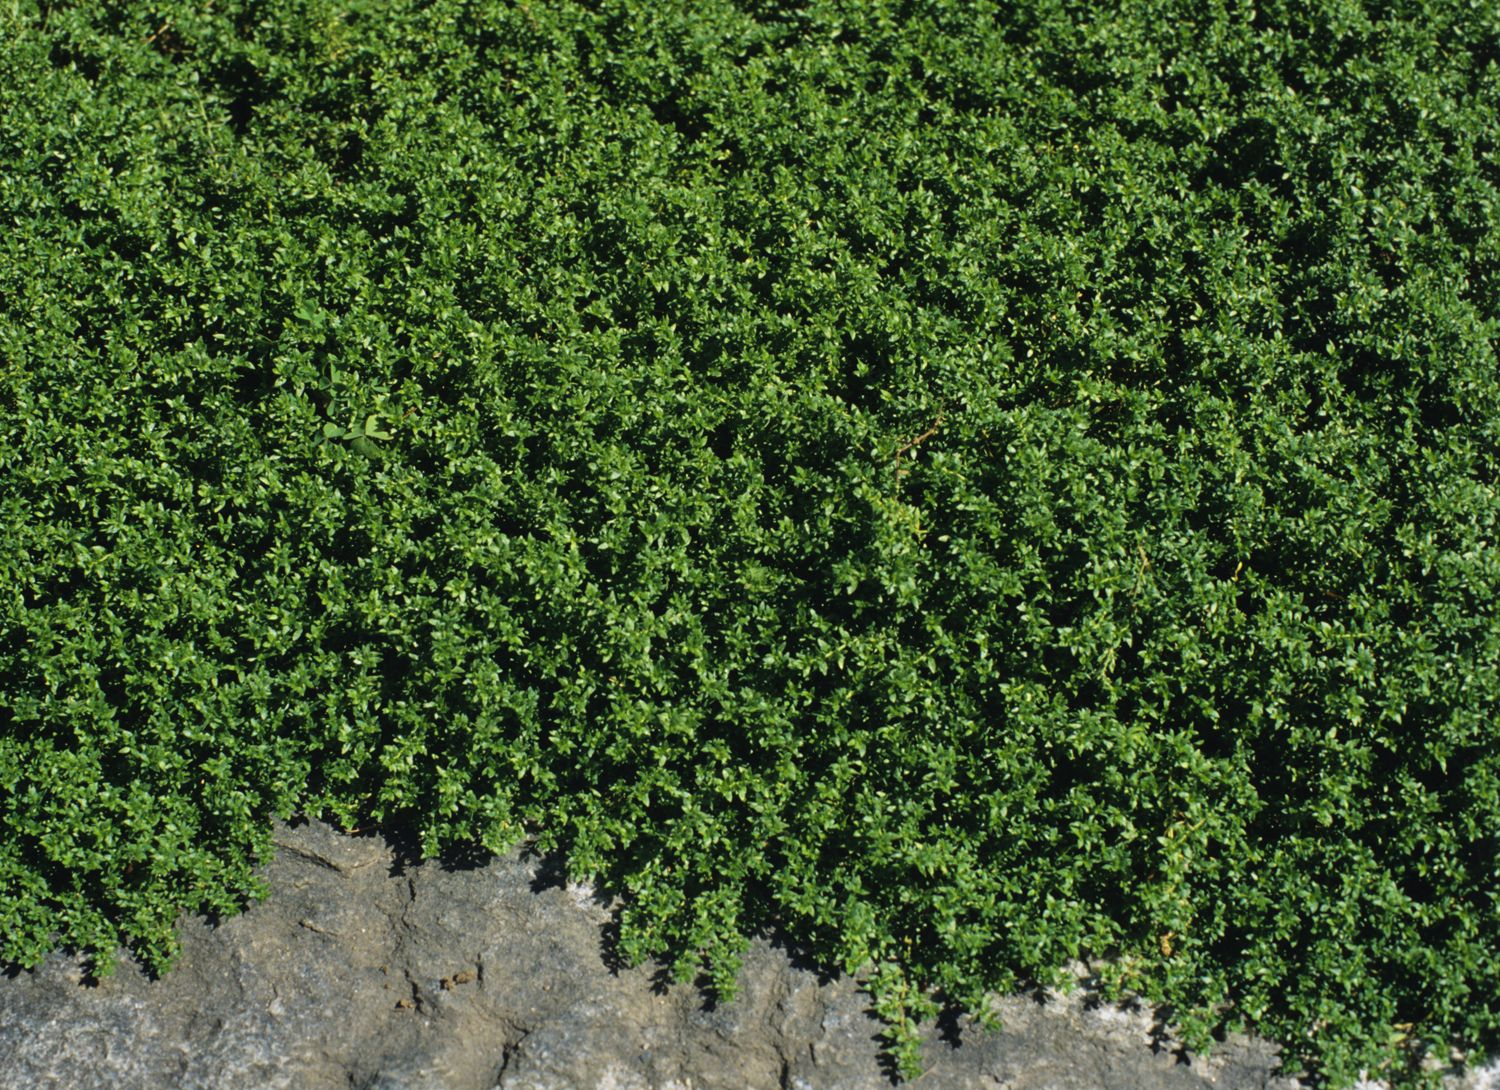 Creeping Thyme Plant Mosquito Repelling Creeping Thyme Plant It Has Citronella Oil That Makes It Smell Lem With Images Ground Cover Plants Ground Cover Creeping Thyme